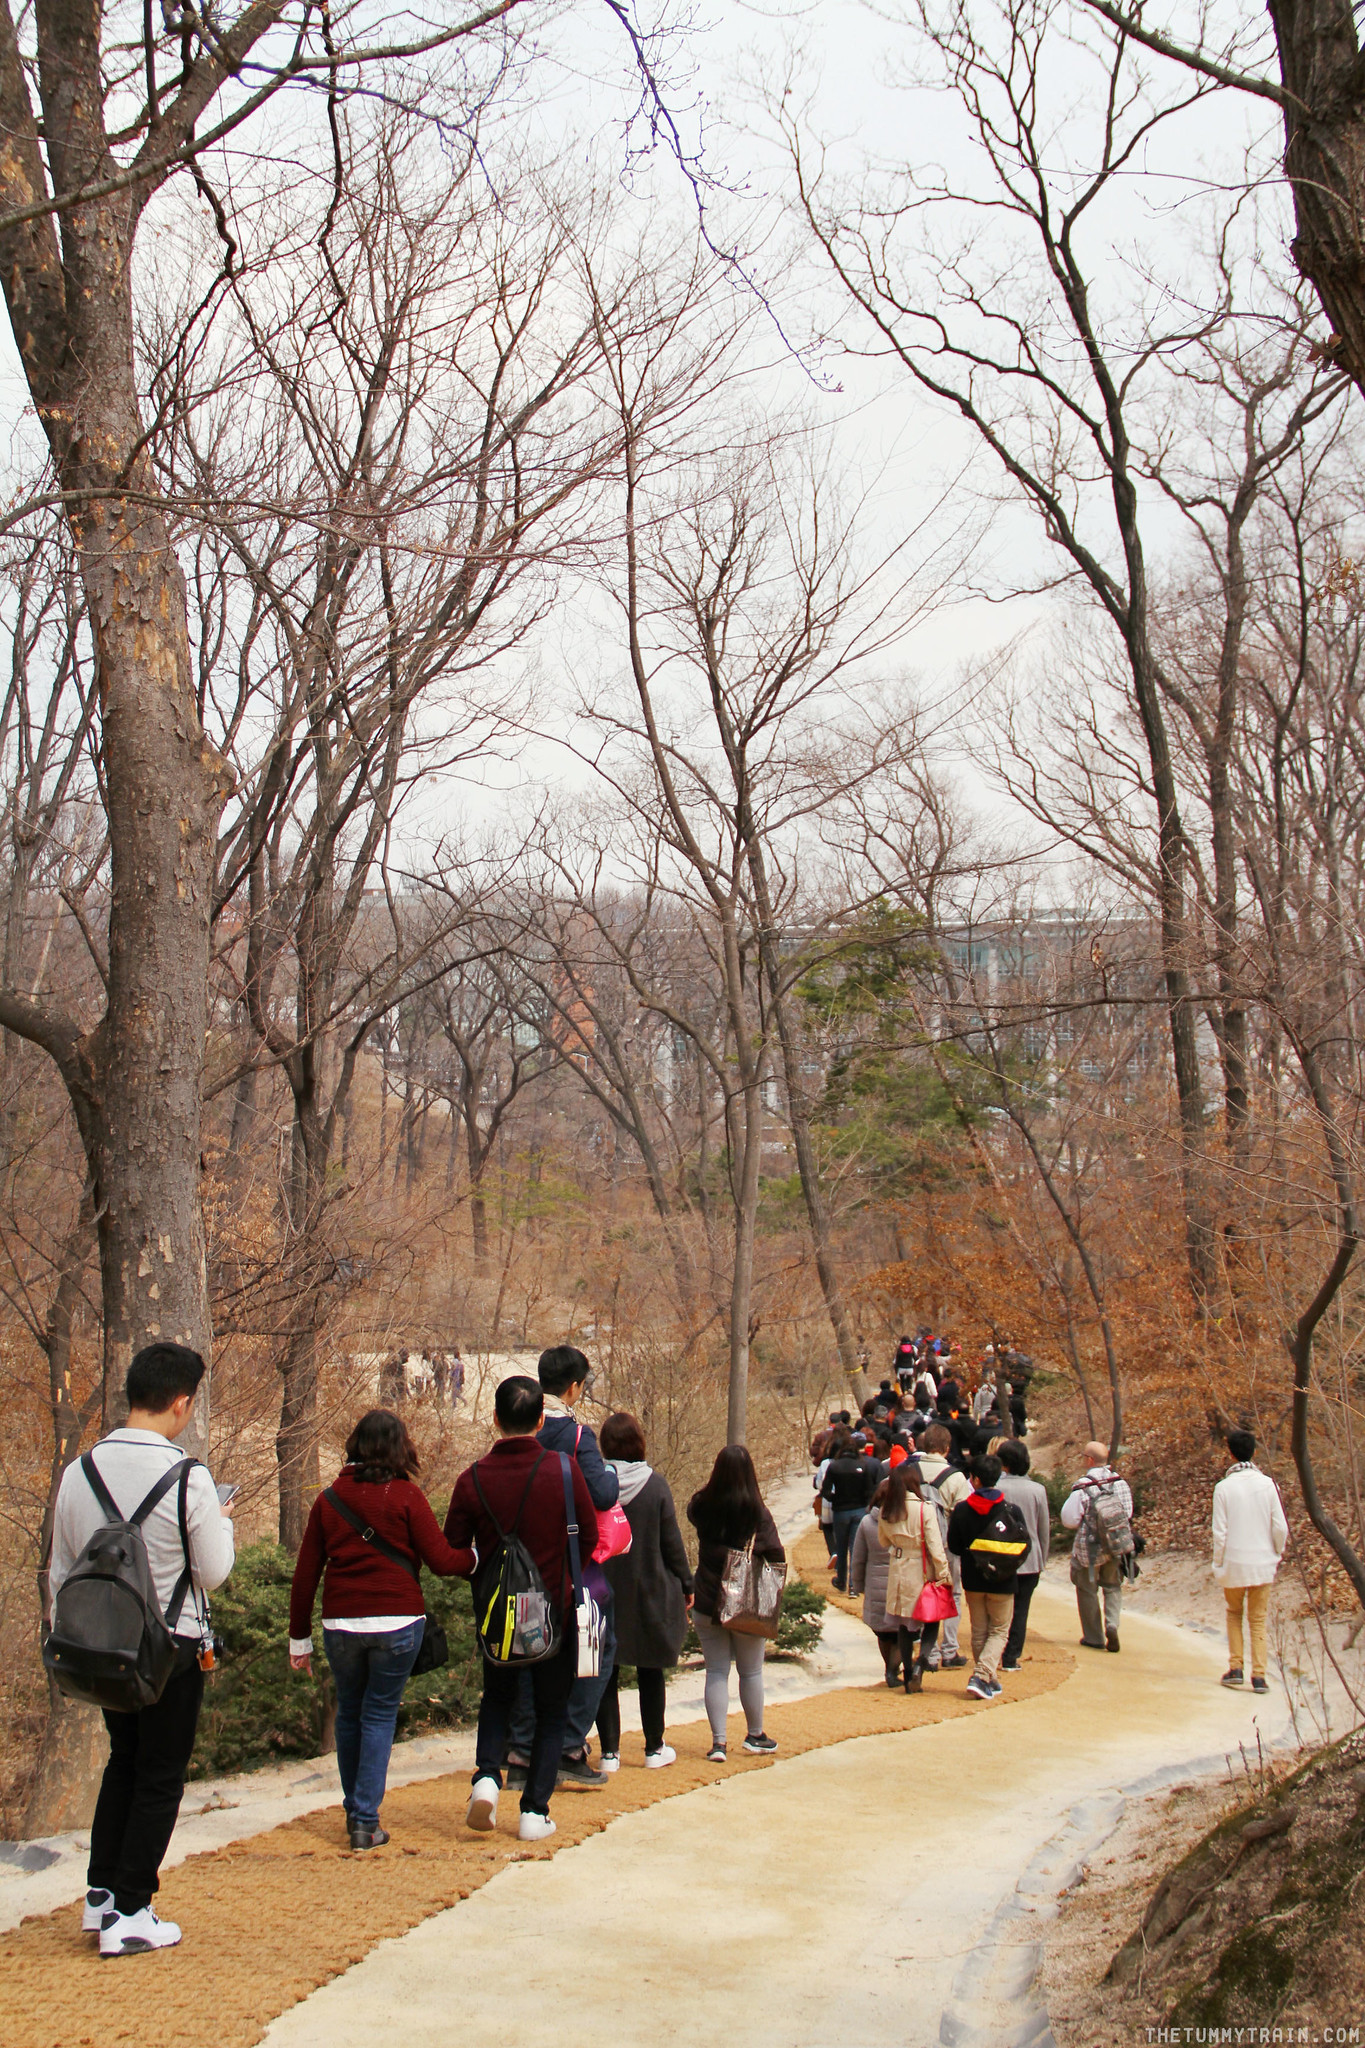 33401757921 46ffbf0989 k - Seoul-ful Spring 2016: Greeting the first blooms at Changdeokgung Palace